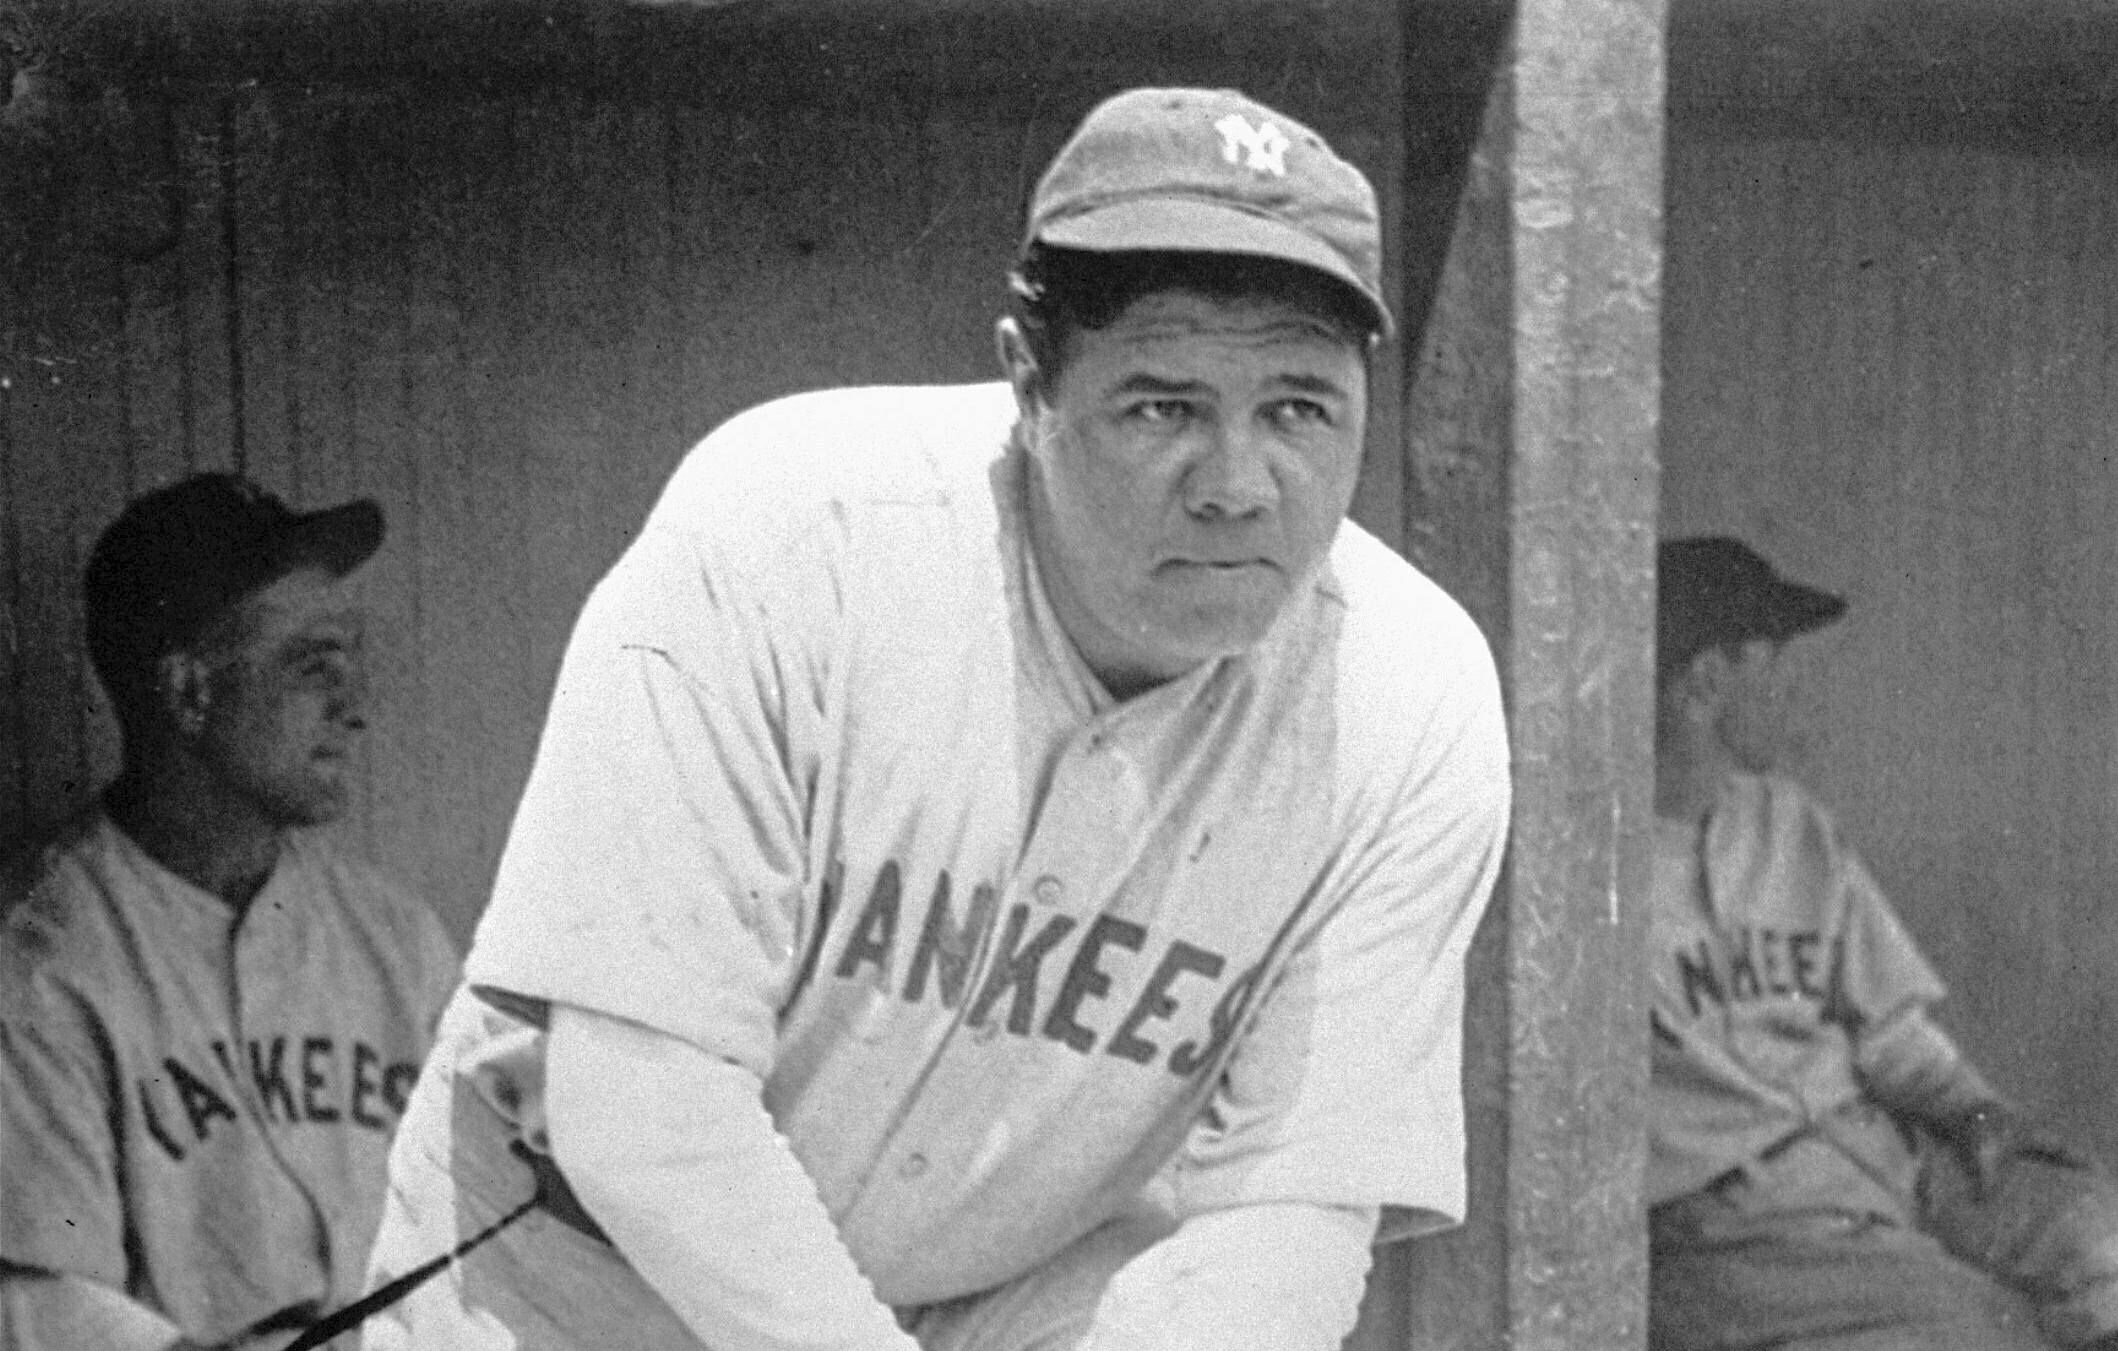 What did baseball legend babe ruth keep on his head under his baseball cap?